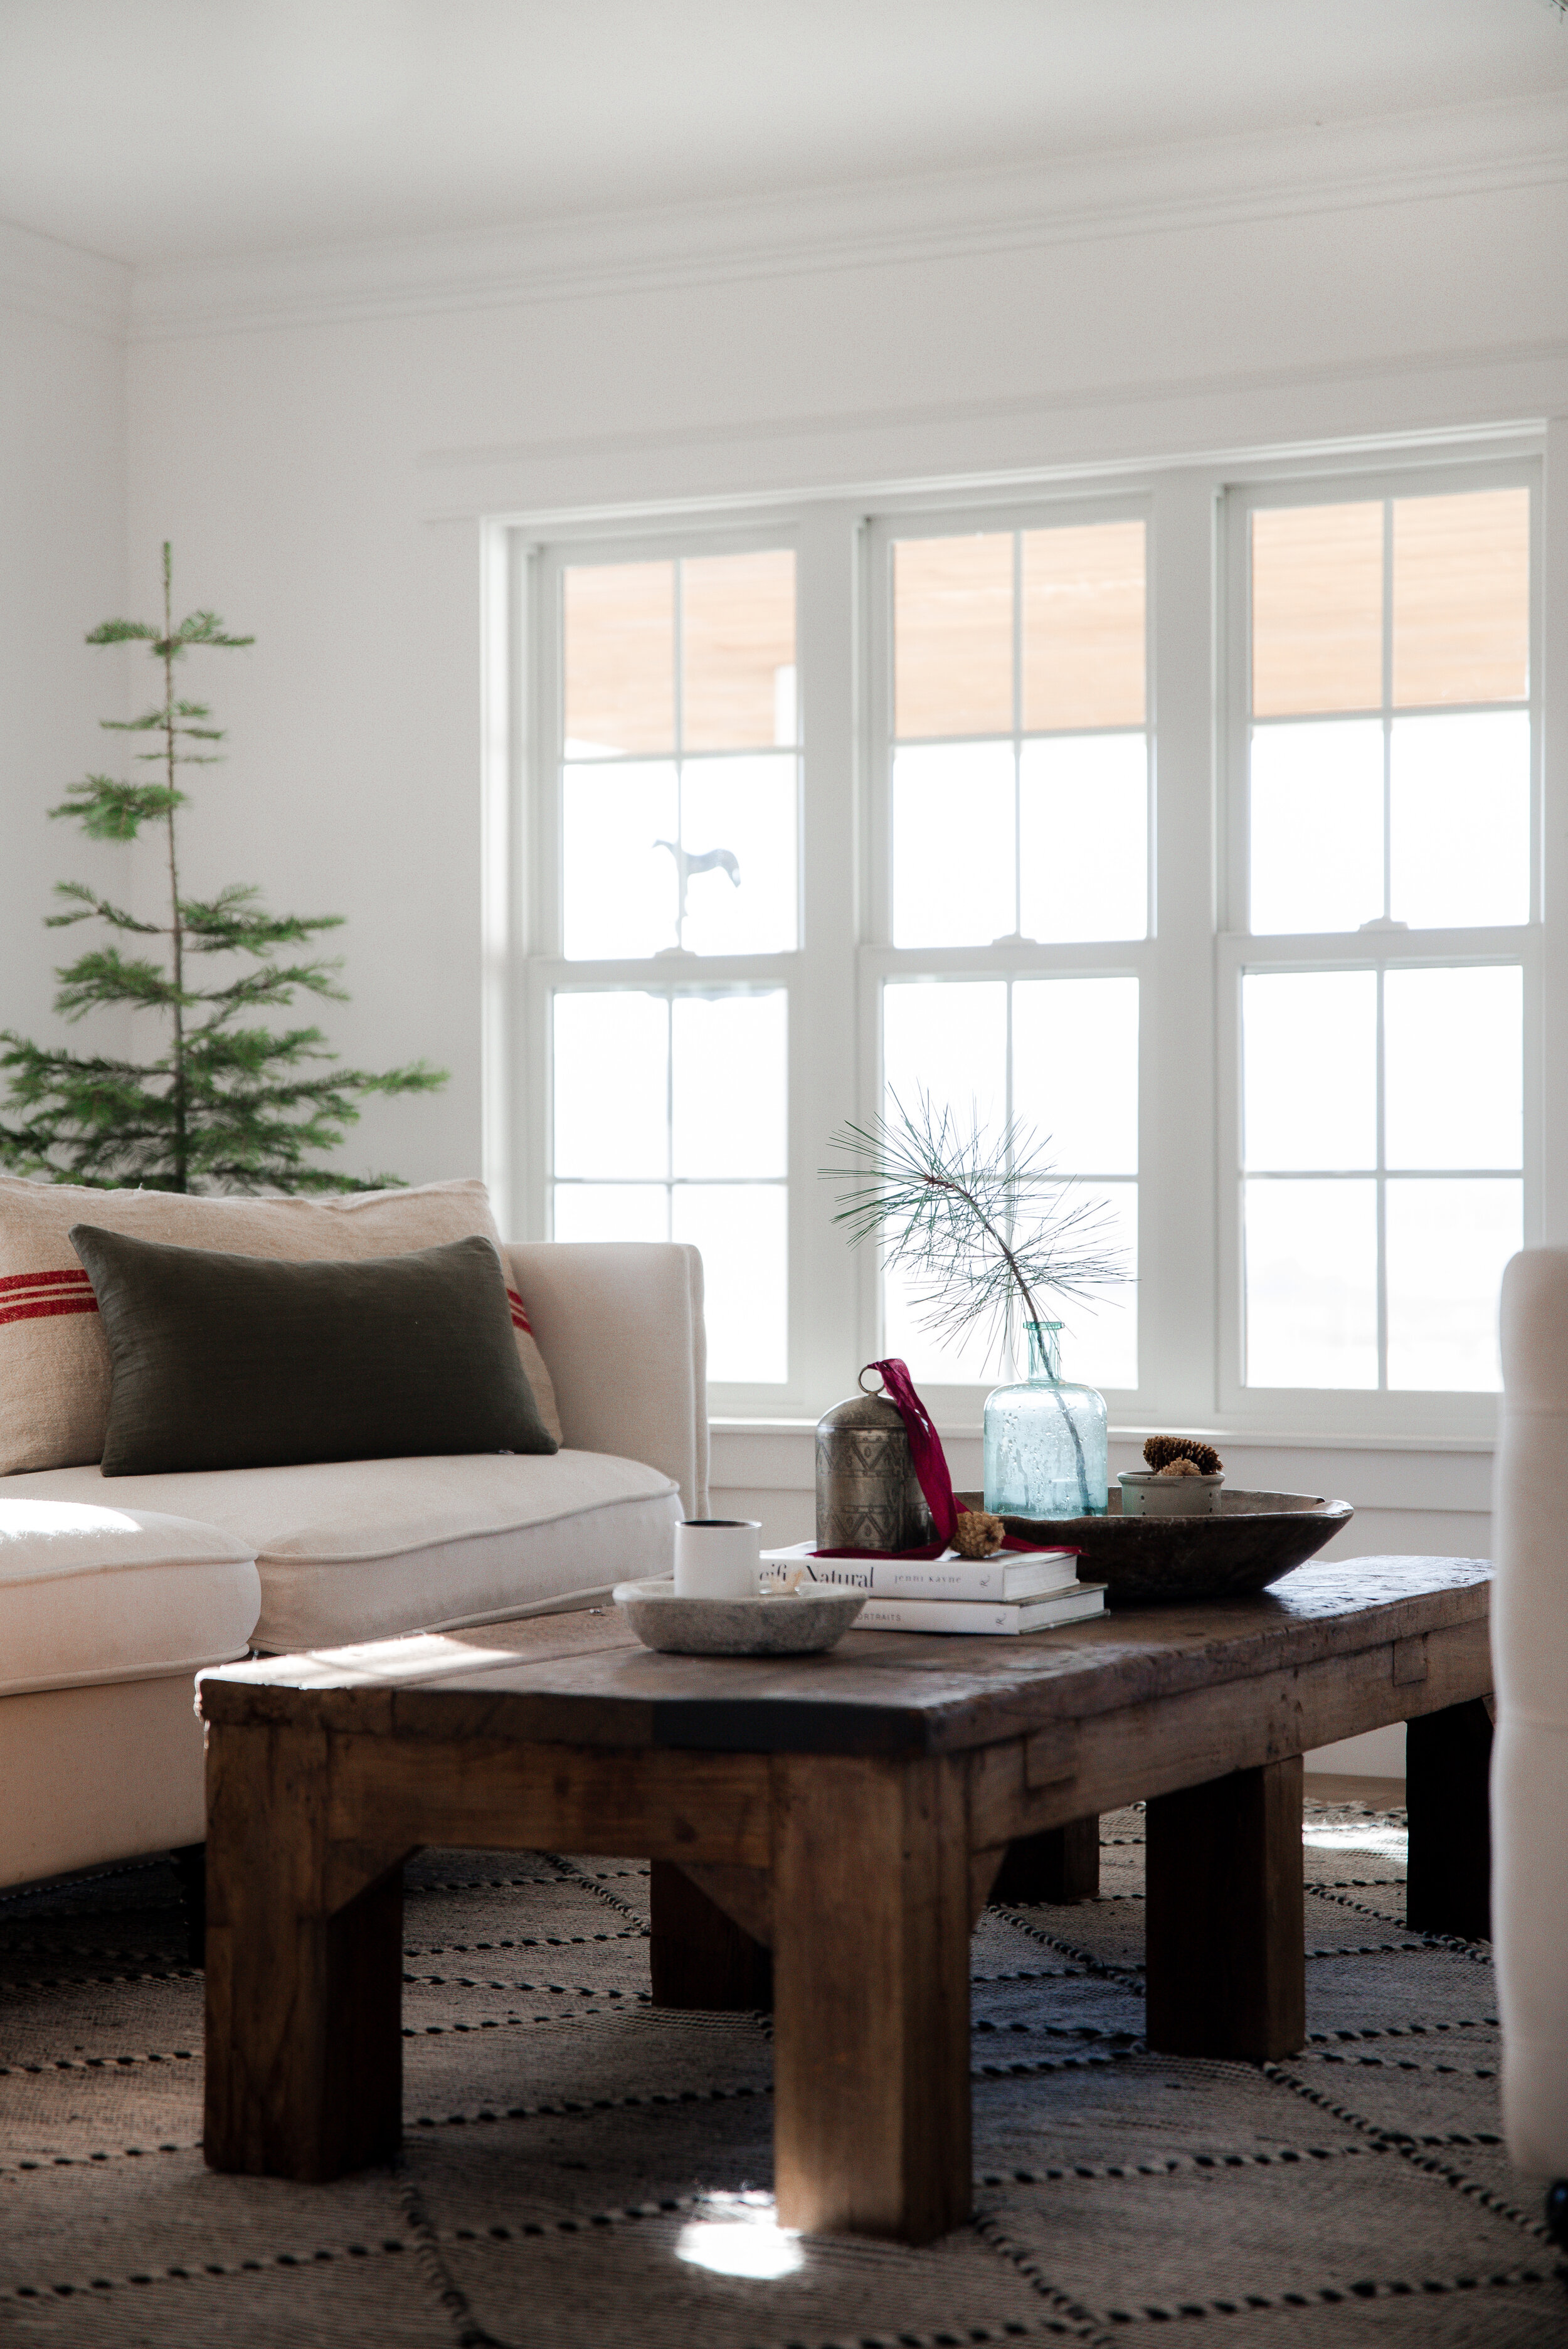 Simple Ideas To Dress Up Your Living Room For The Holidays